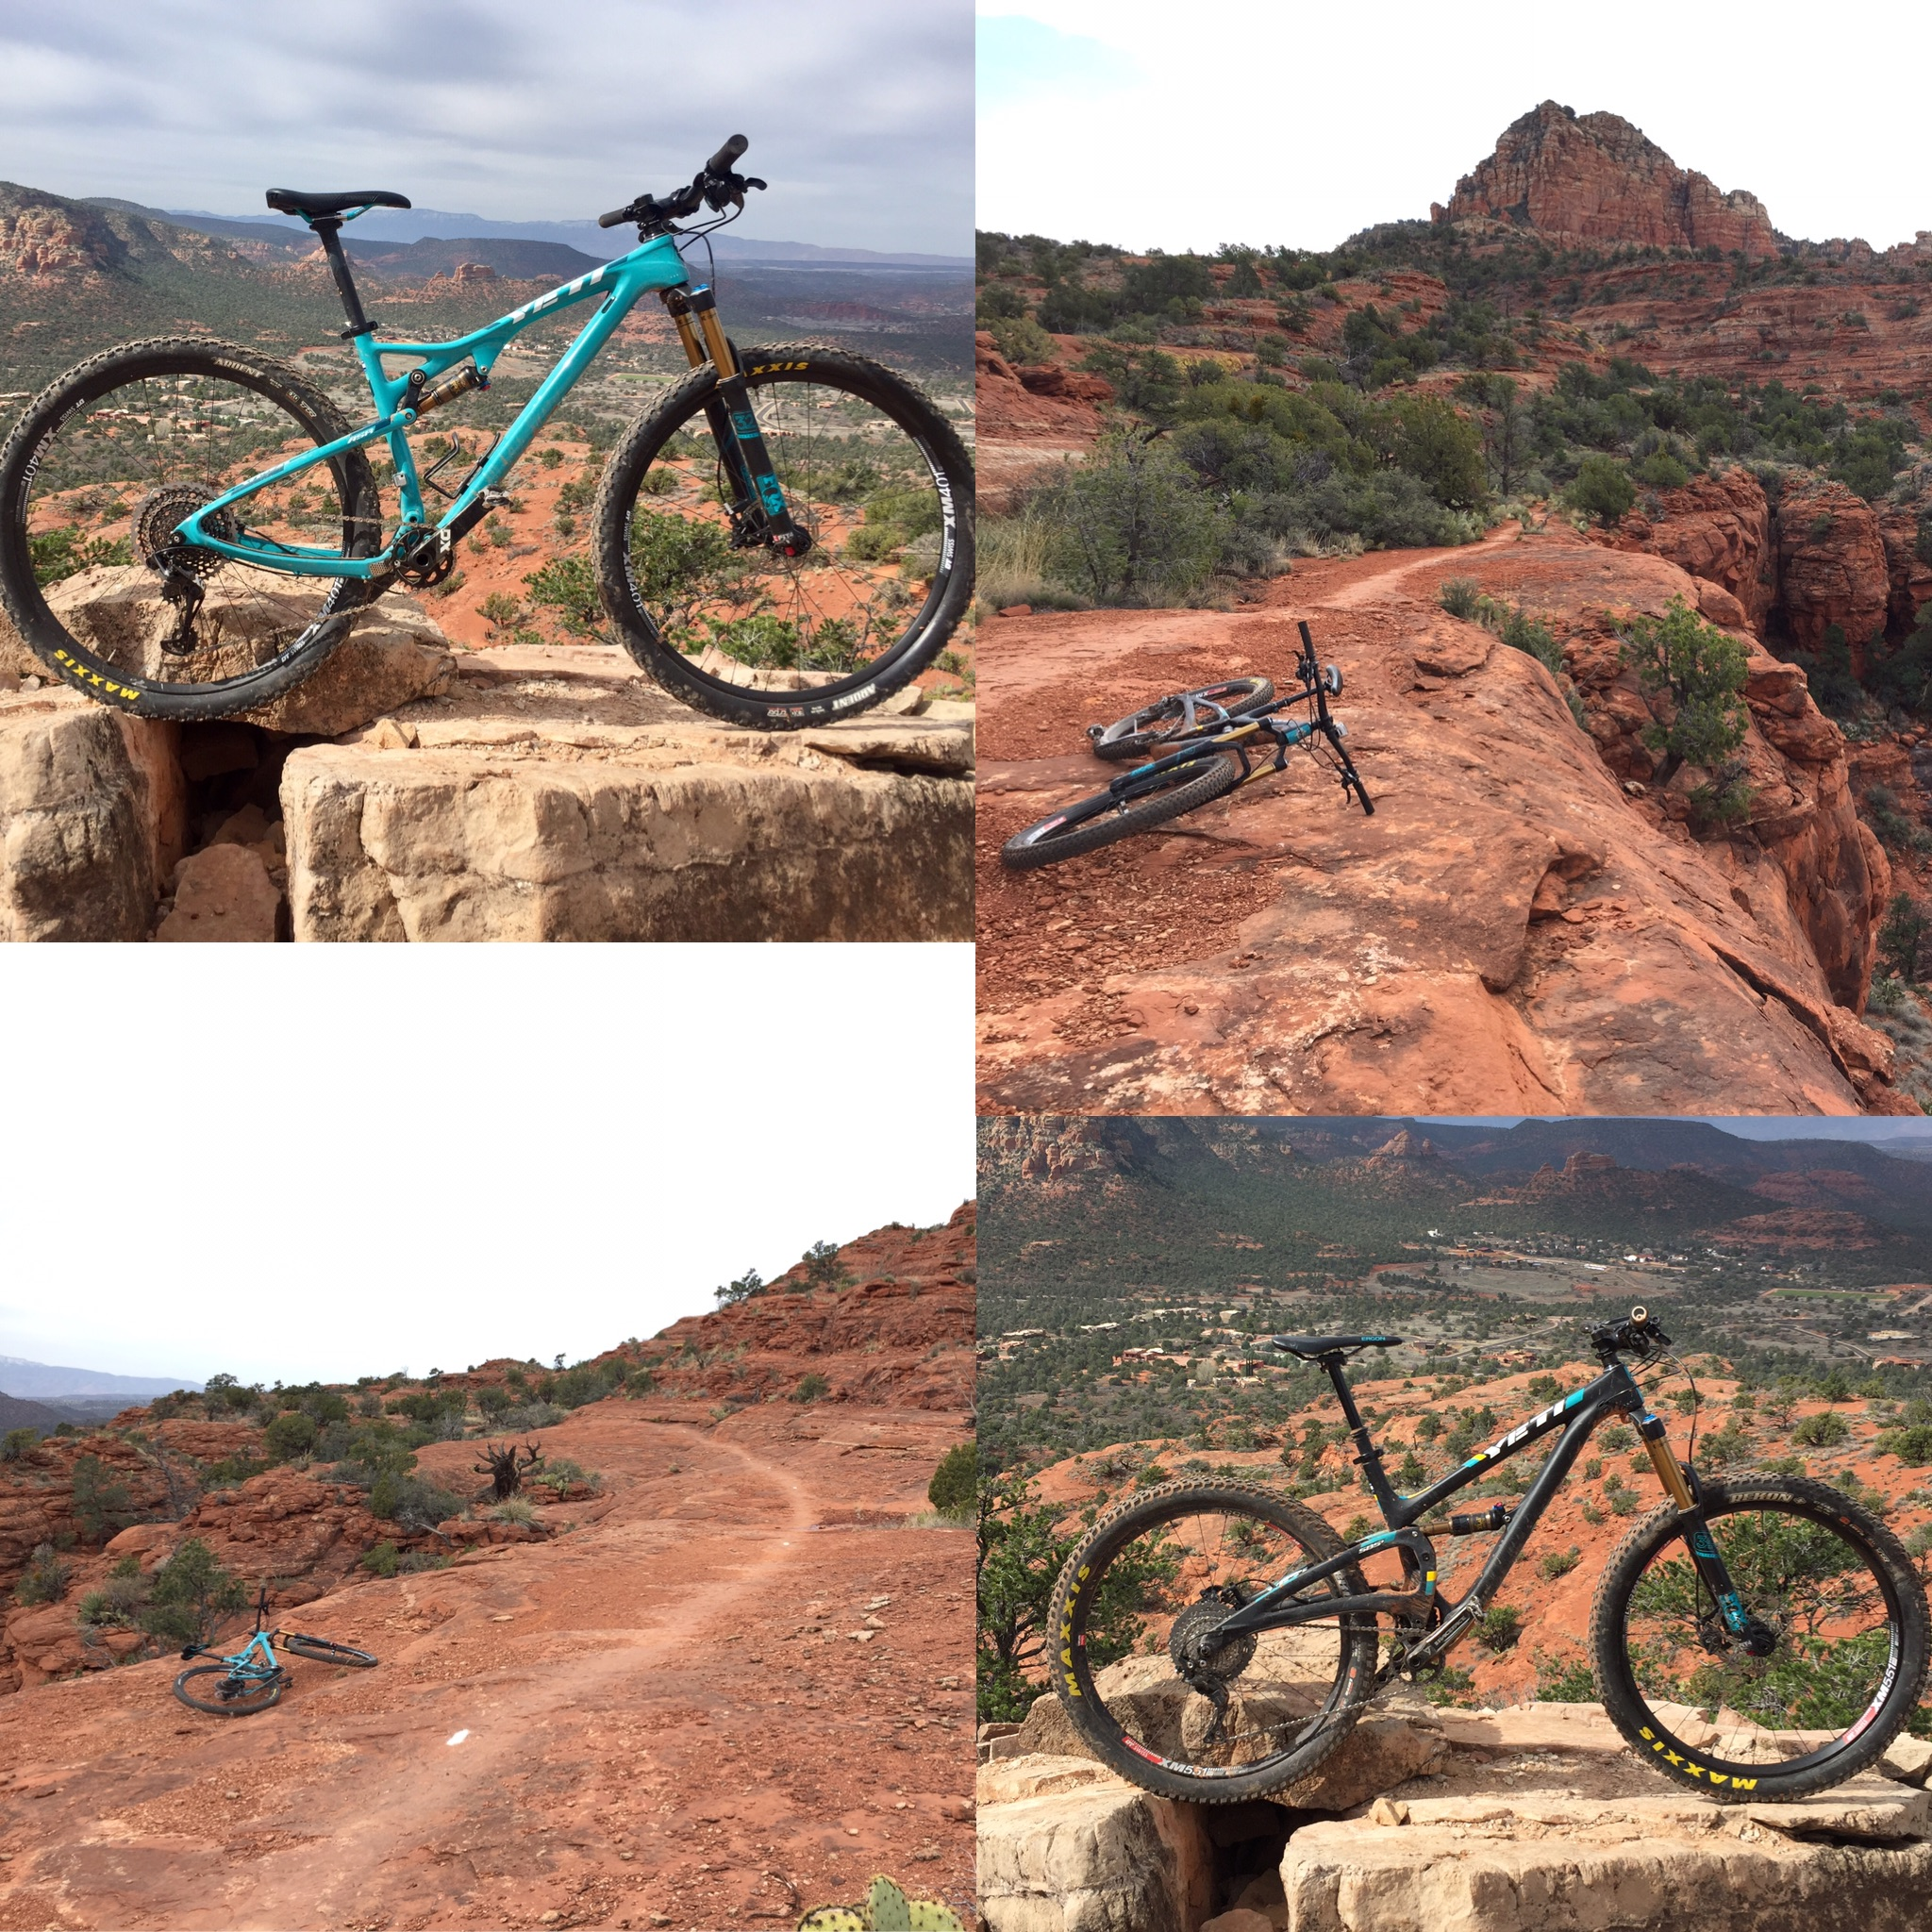 Having these two bikes on some of Sedona's best trails made for a good day.